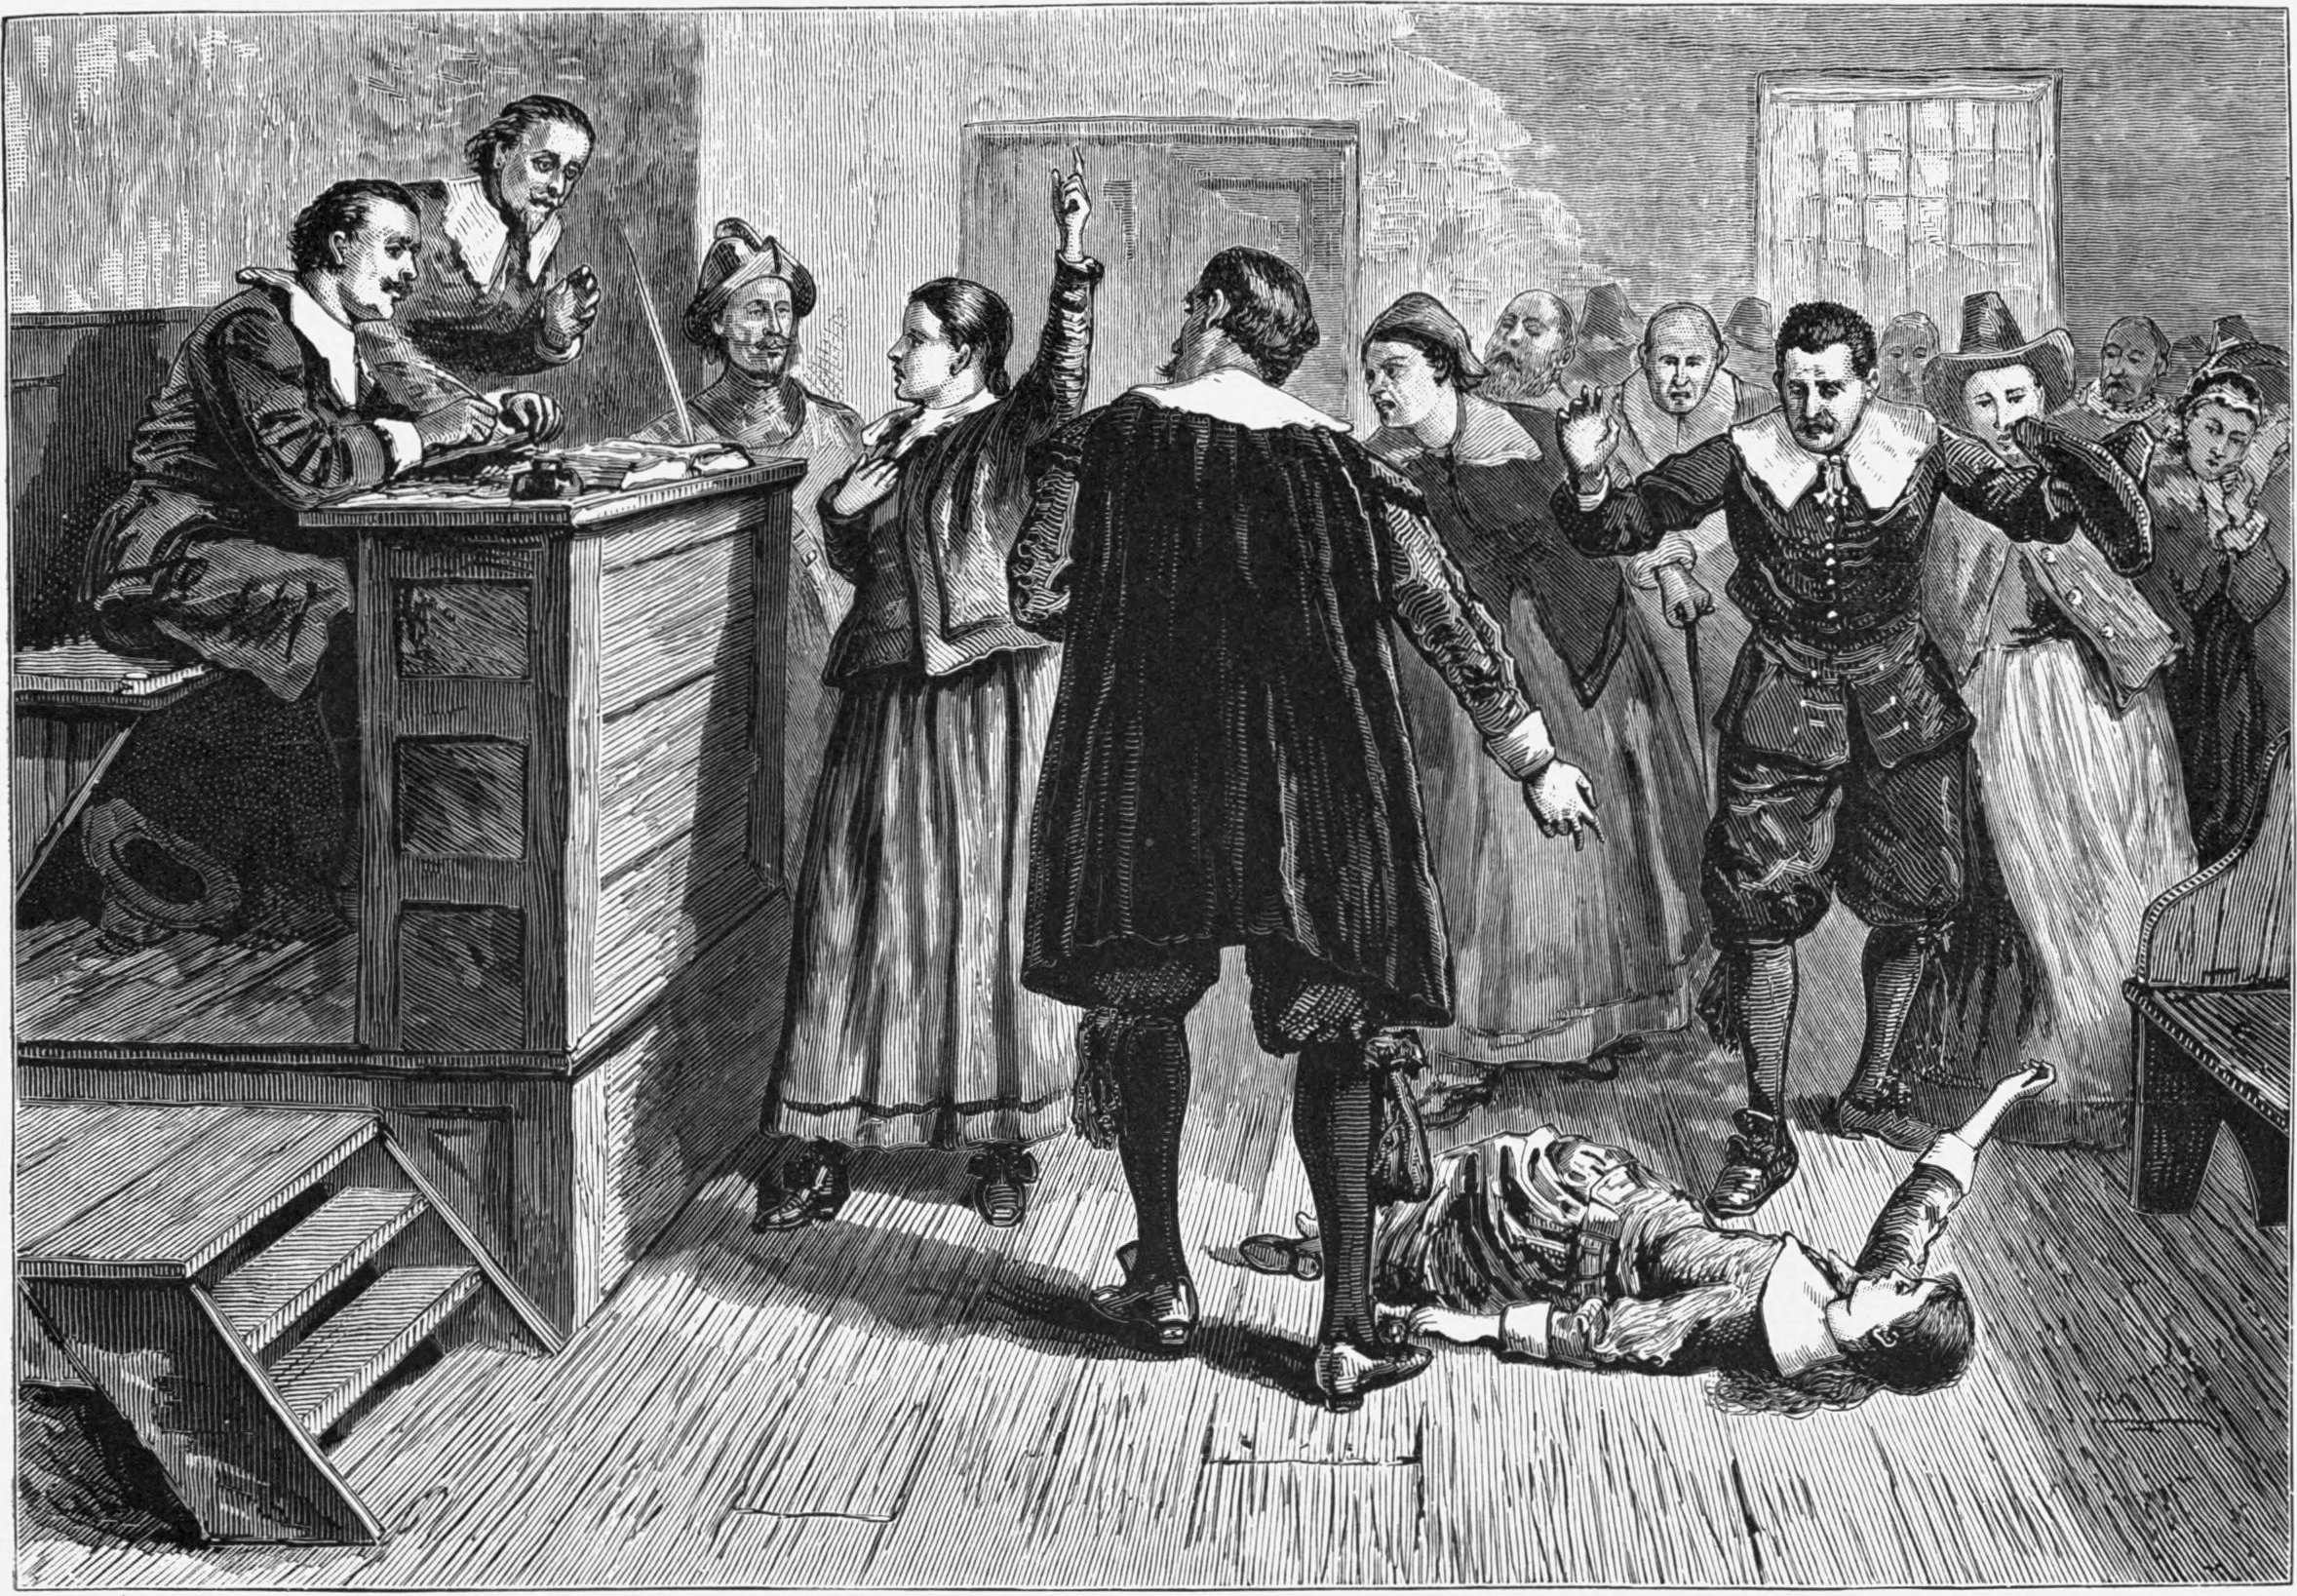 Salem Witch Trials might have been sparked by plant disease